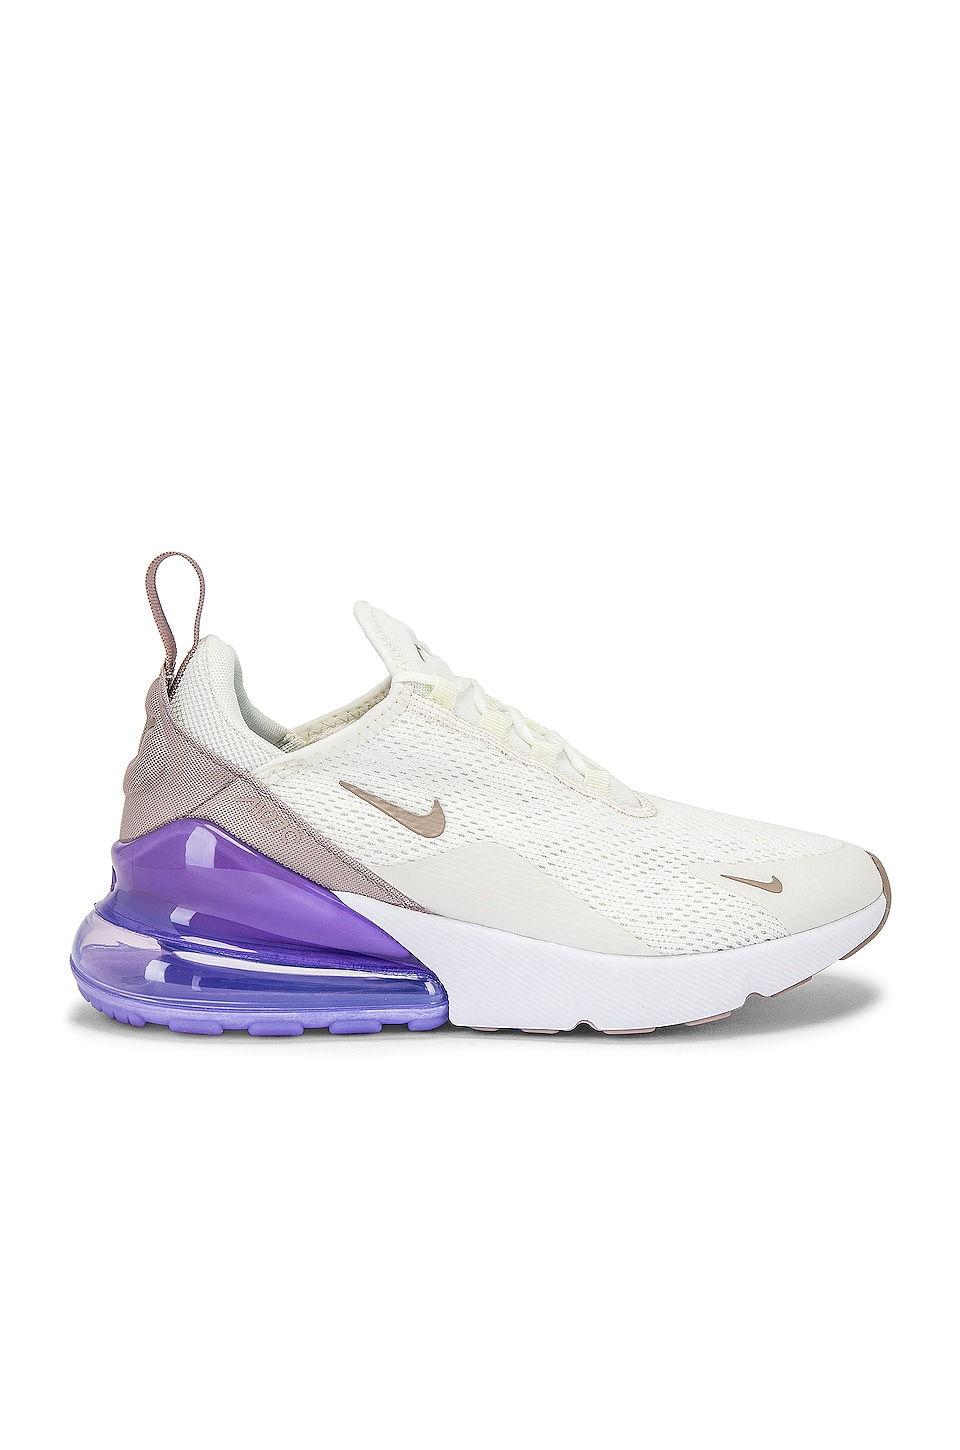 Nike Women's Air Max 270 Sneaker in Purple & White